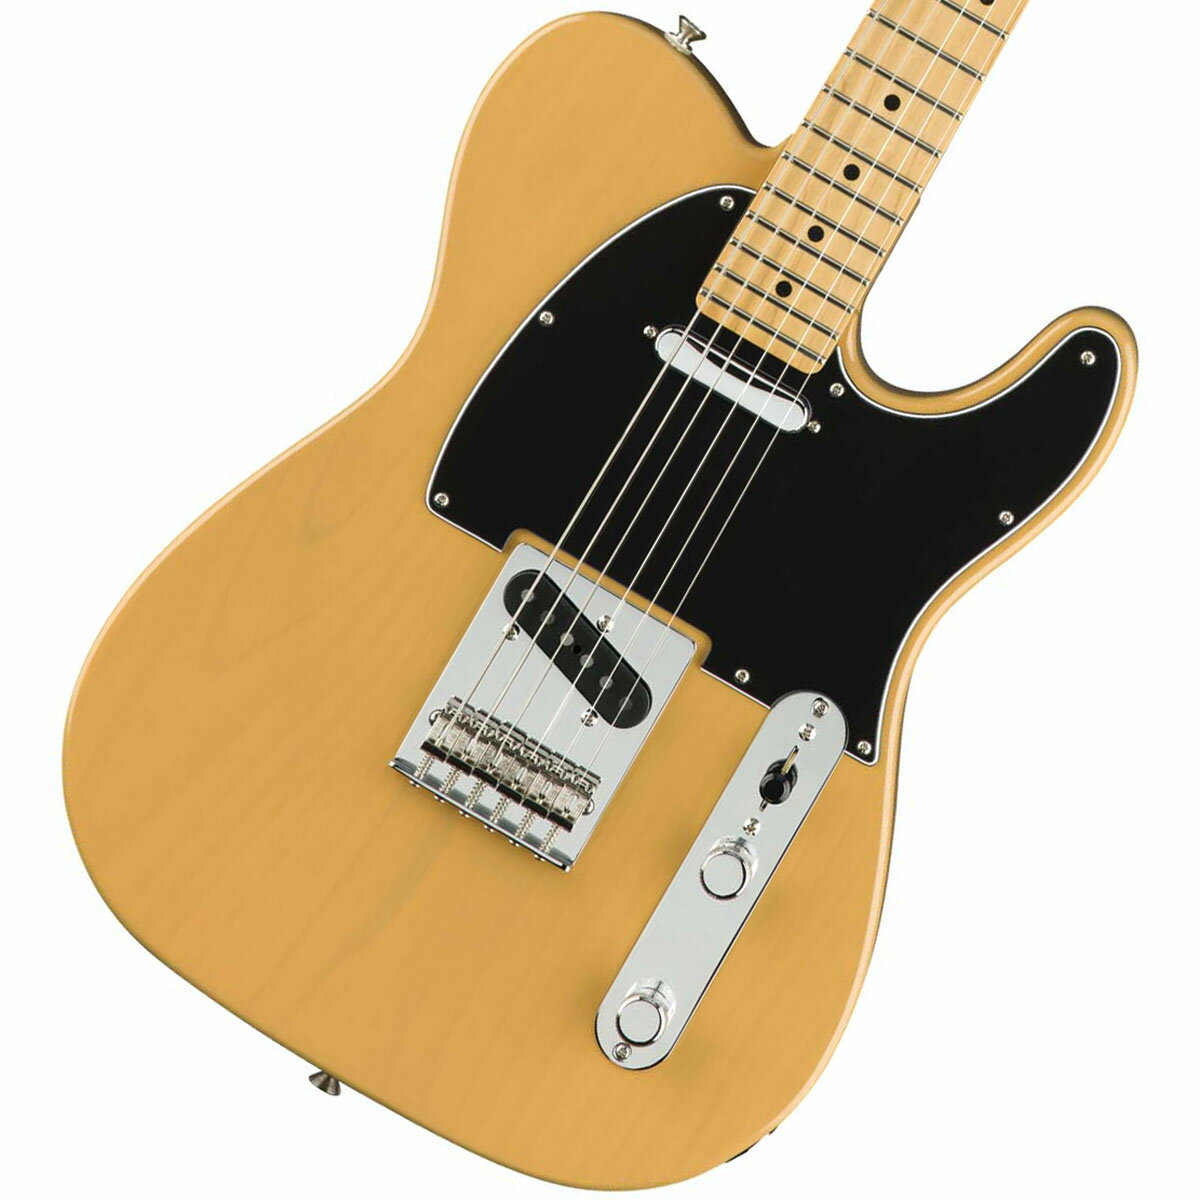 Fender / Player Series Telecaster Butterscotch Blonde Maple 《数量限定!FenderアンプFRONTMAN10Gもセット!/+591355890》《お取り寄せ商品/2月以降入荷予定》【YRK】